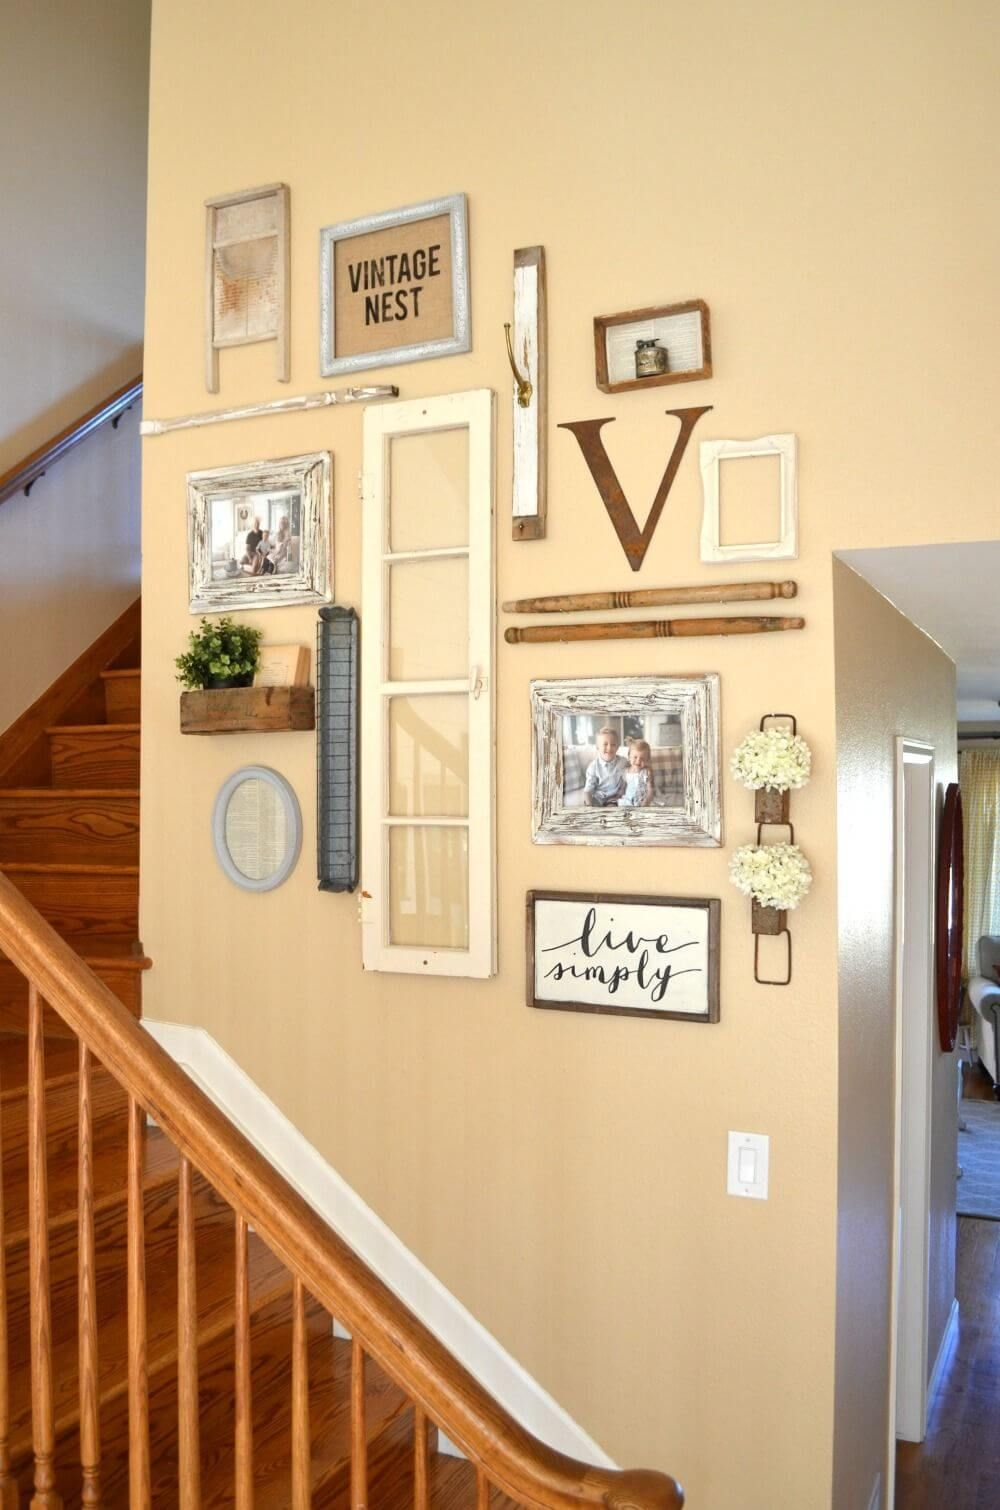 28 Stylish Stairway Decorating Ideas for Displaying Everything from ...